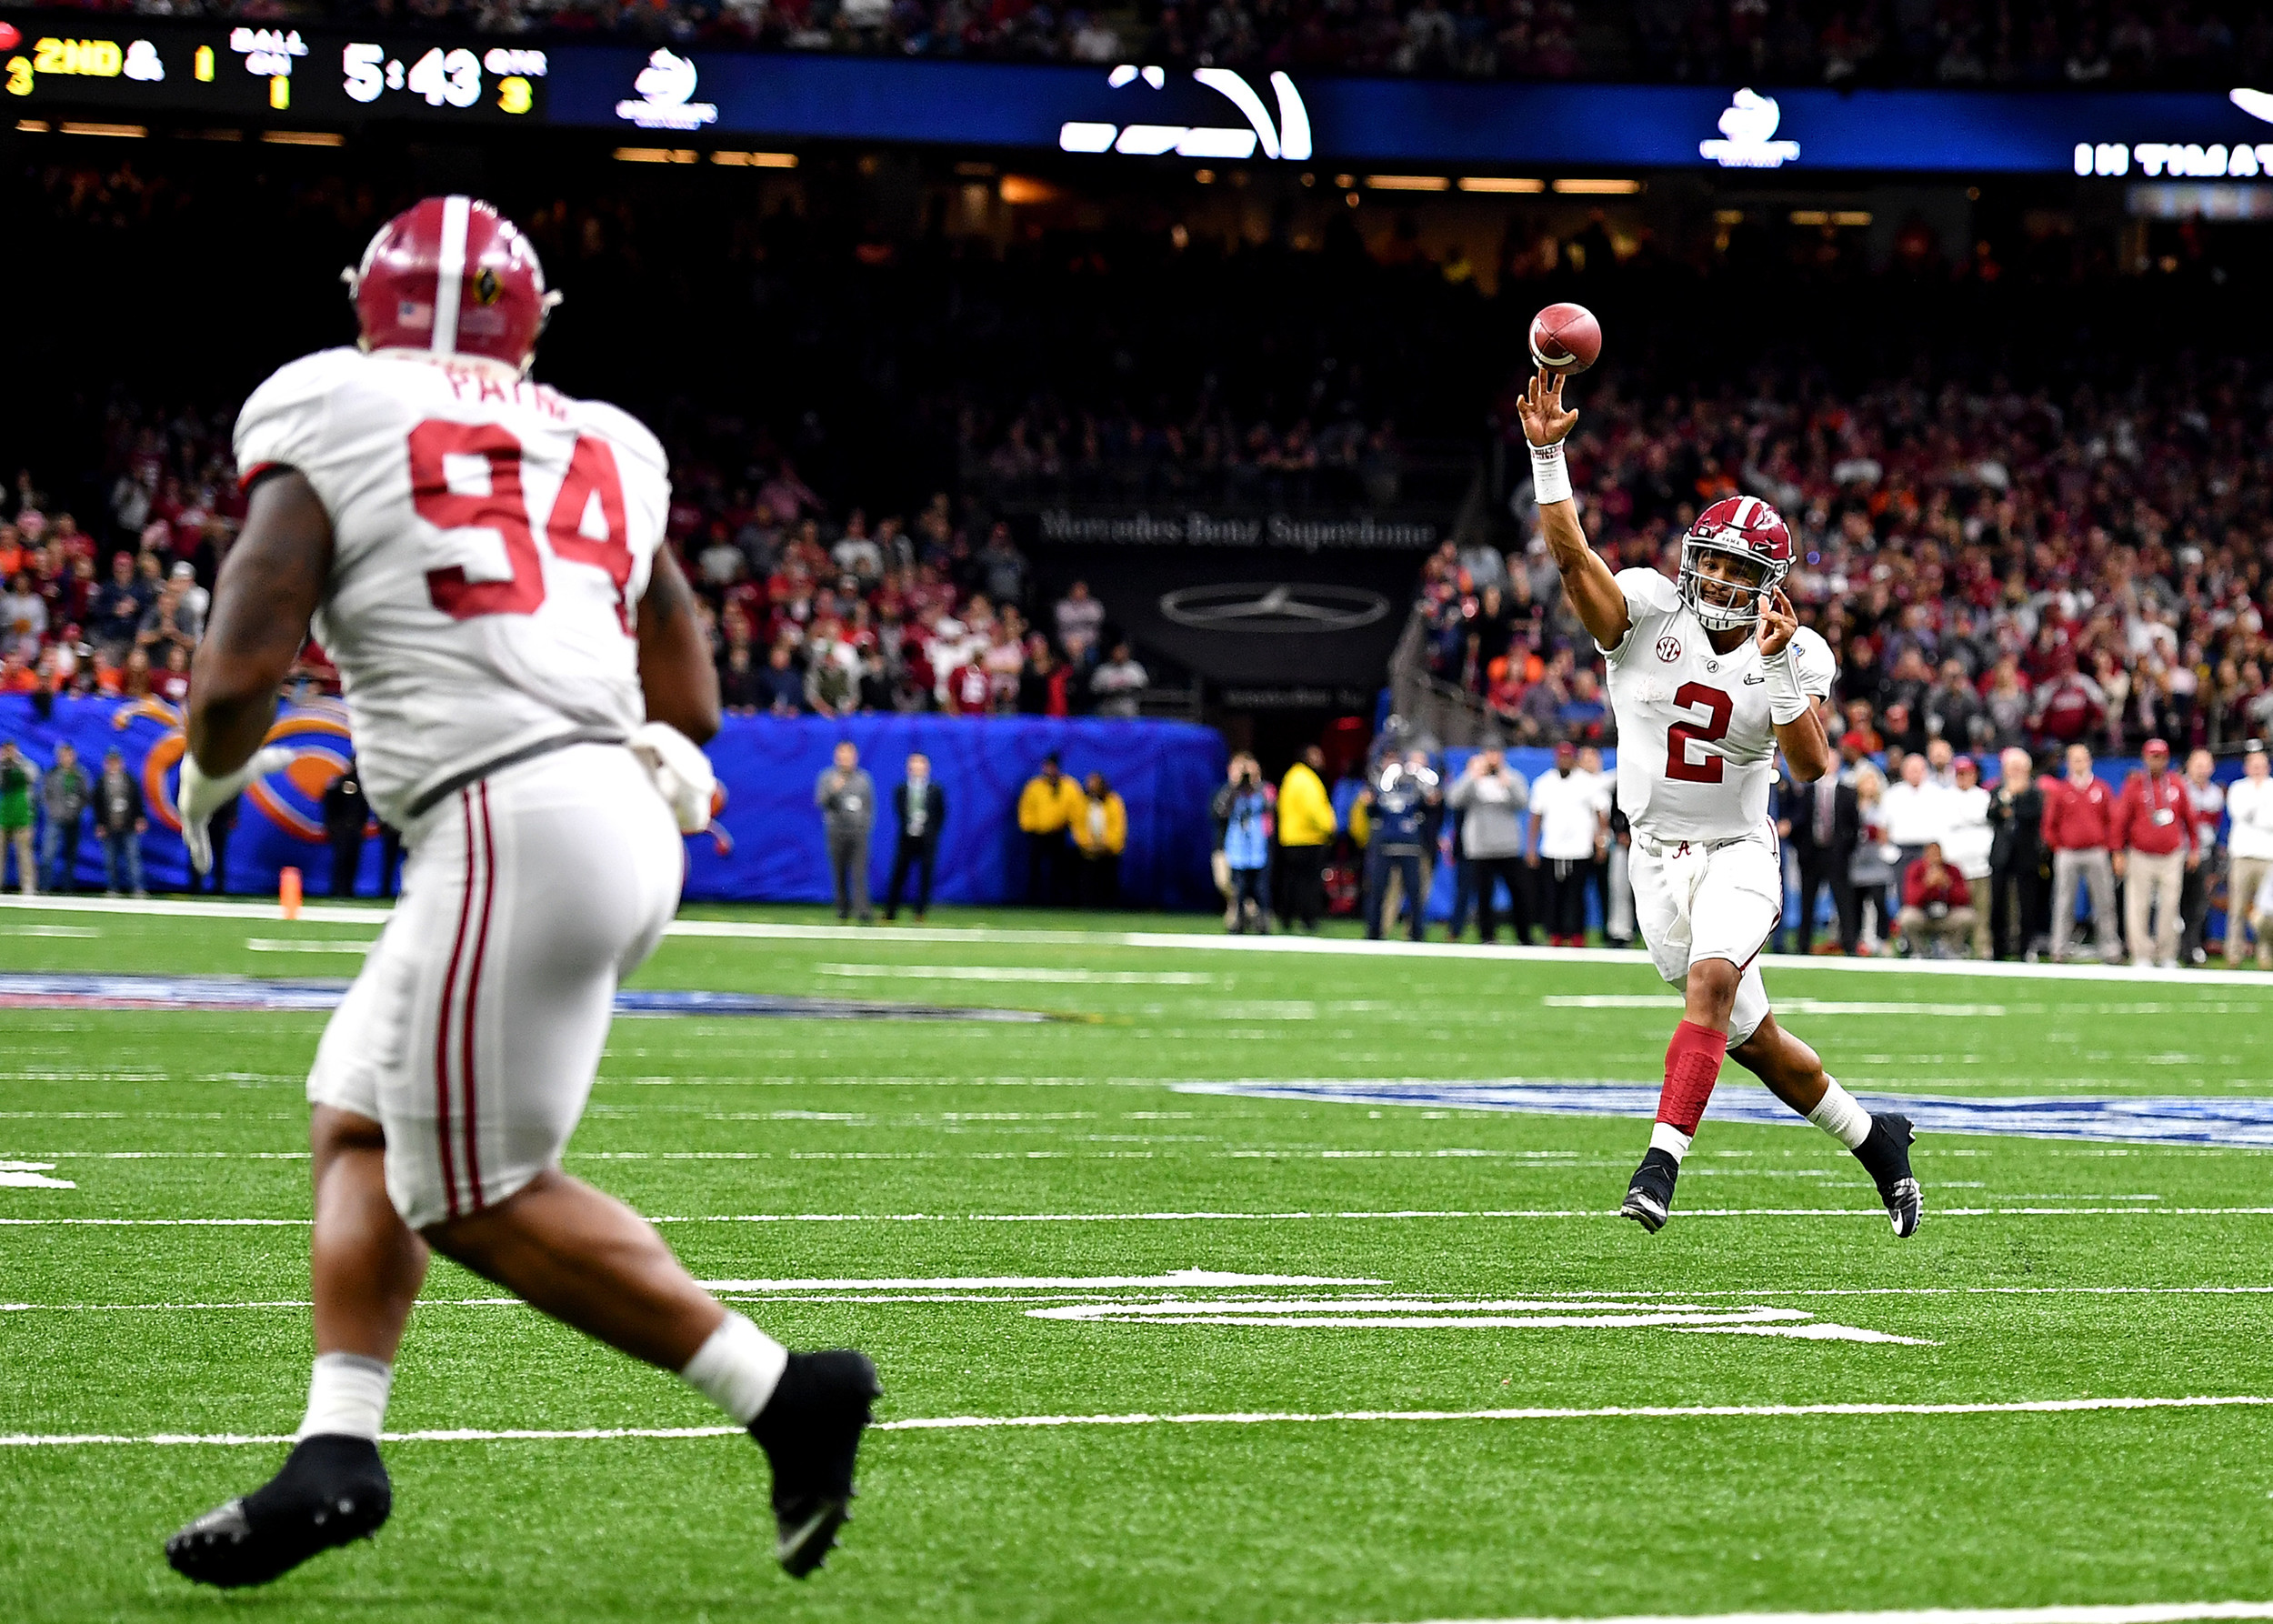 Alabama Crimson Tide lineman Da'Ron Payne (94) prepares to catch the pass from quarterback Jalen Hurts (2)  during the second half of the 2018 AllState Sugar Bowl on Jan. 1, 2018, at the Mercedes-Benz SuperDome in New Orleans, La. Alabama won the game 24-6. (Photo by Lee Walls)